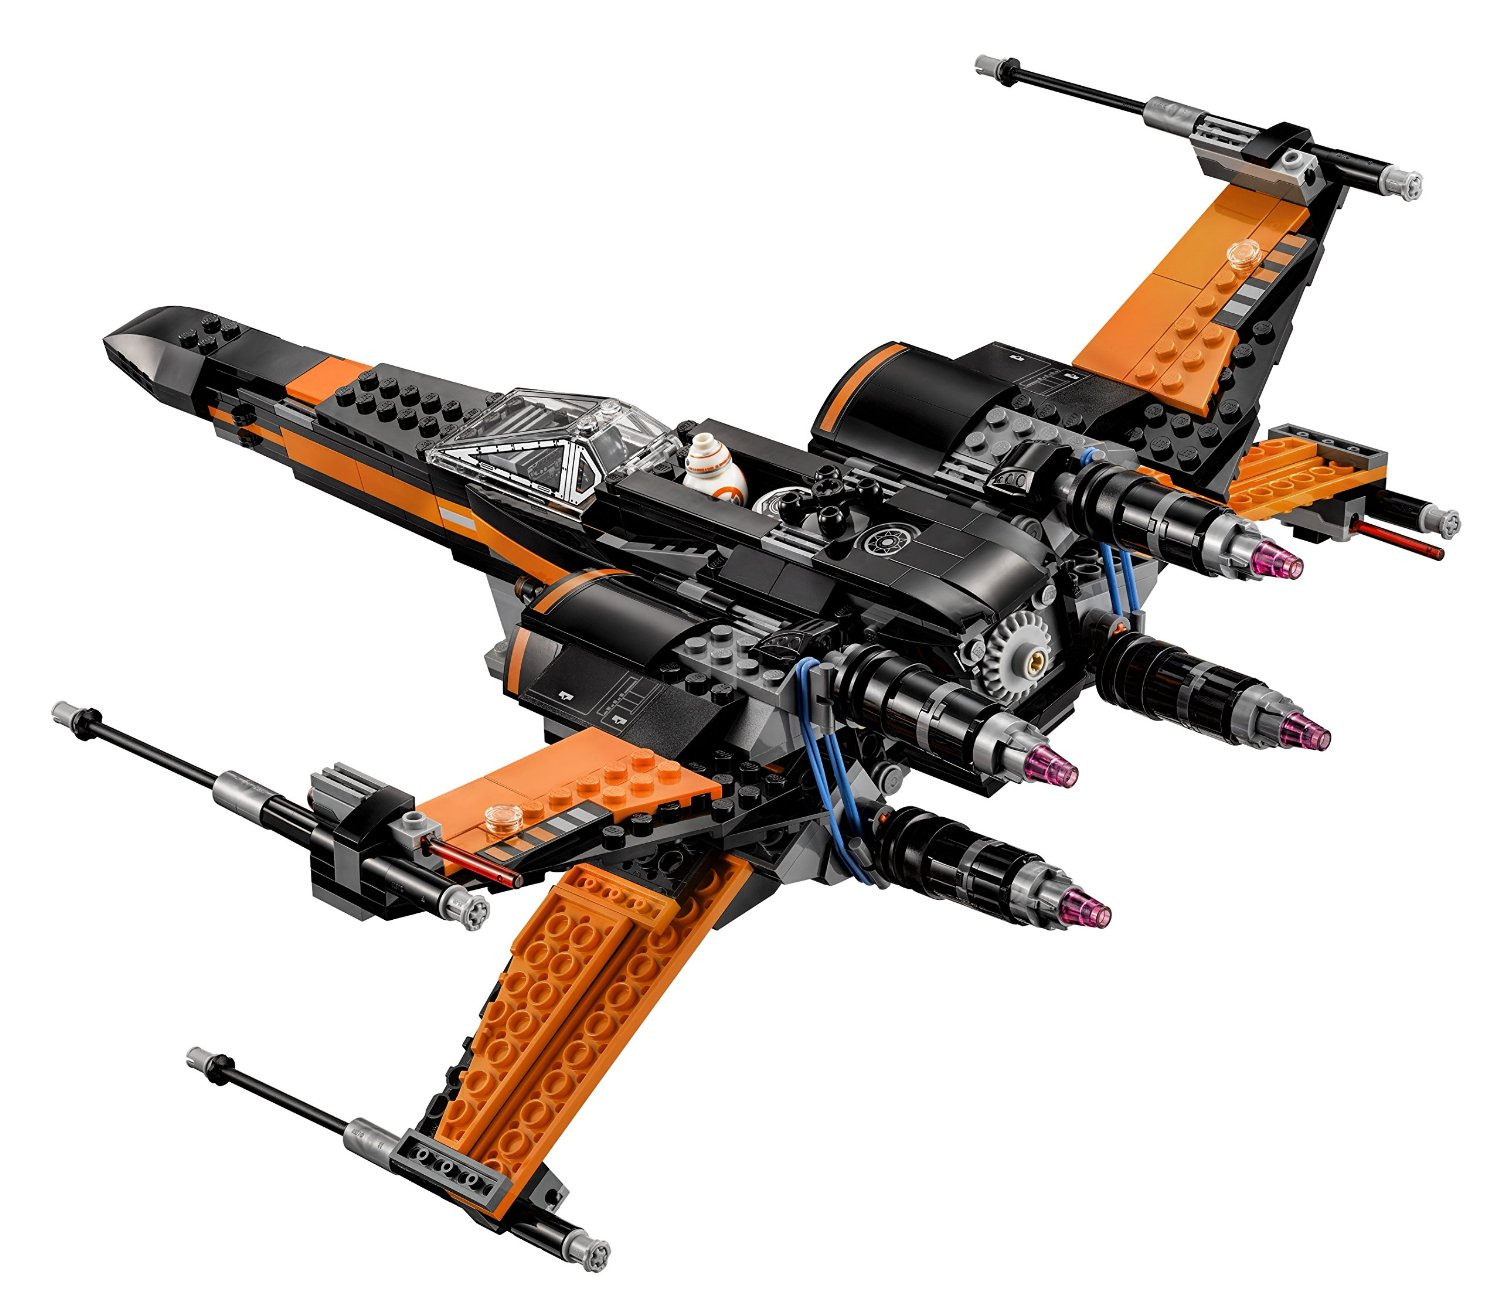 LEGO Star Wars Poe's X-Wing Fighter 75102 - 8 - The Family Brick